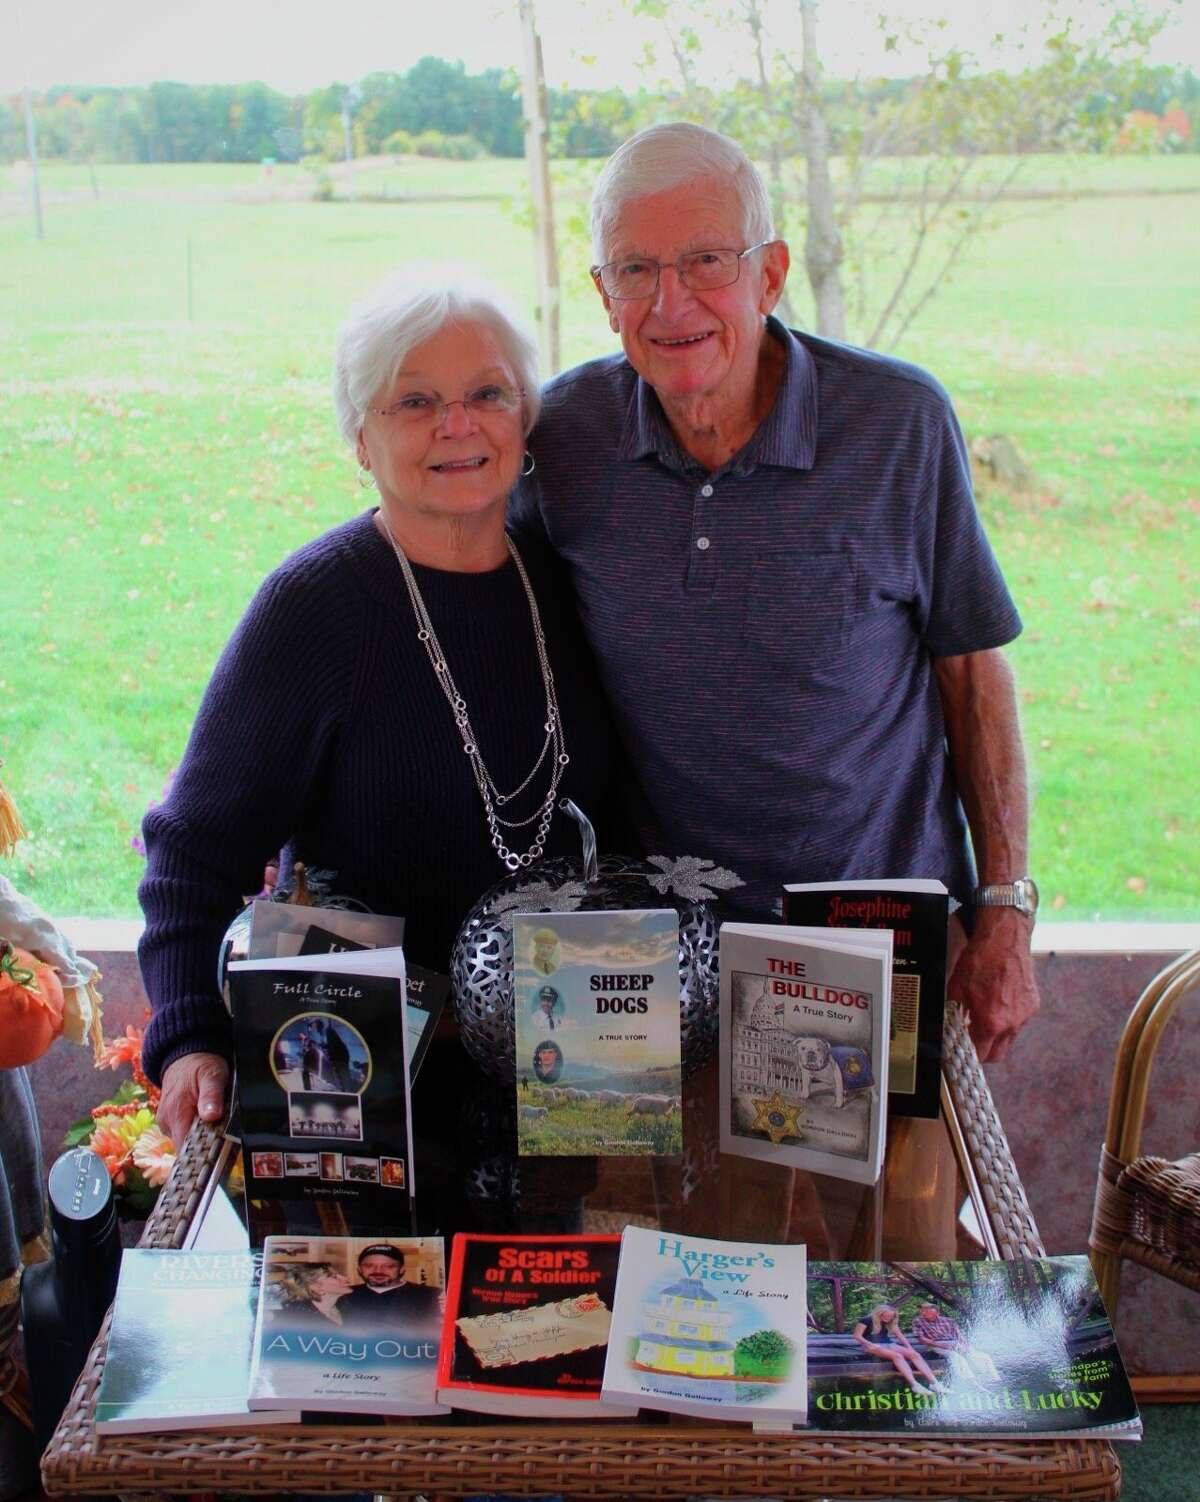 """Writing 10 books in 26 years, Morley resident Gordon Galloway said he has written his final book, """"Sheep Dogs."""" During his career as an author, Galloway said he received significant help from his wife, Mary Ann, as she helped to type his stories. (Courtesy photo)"""